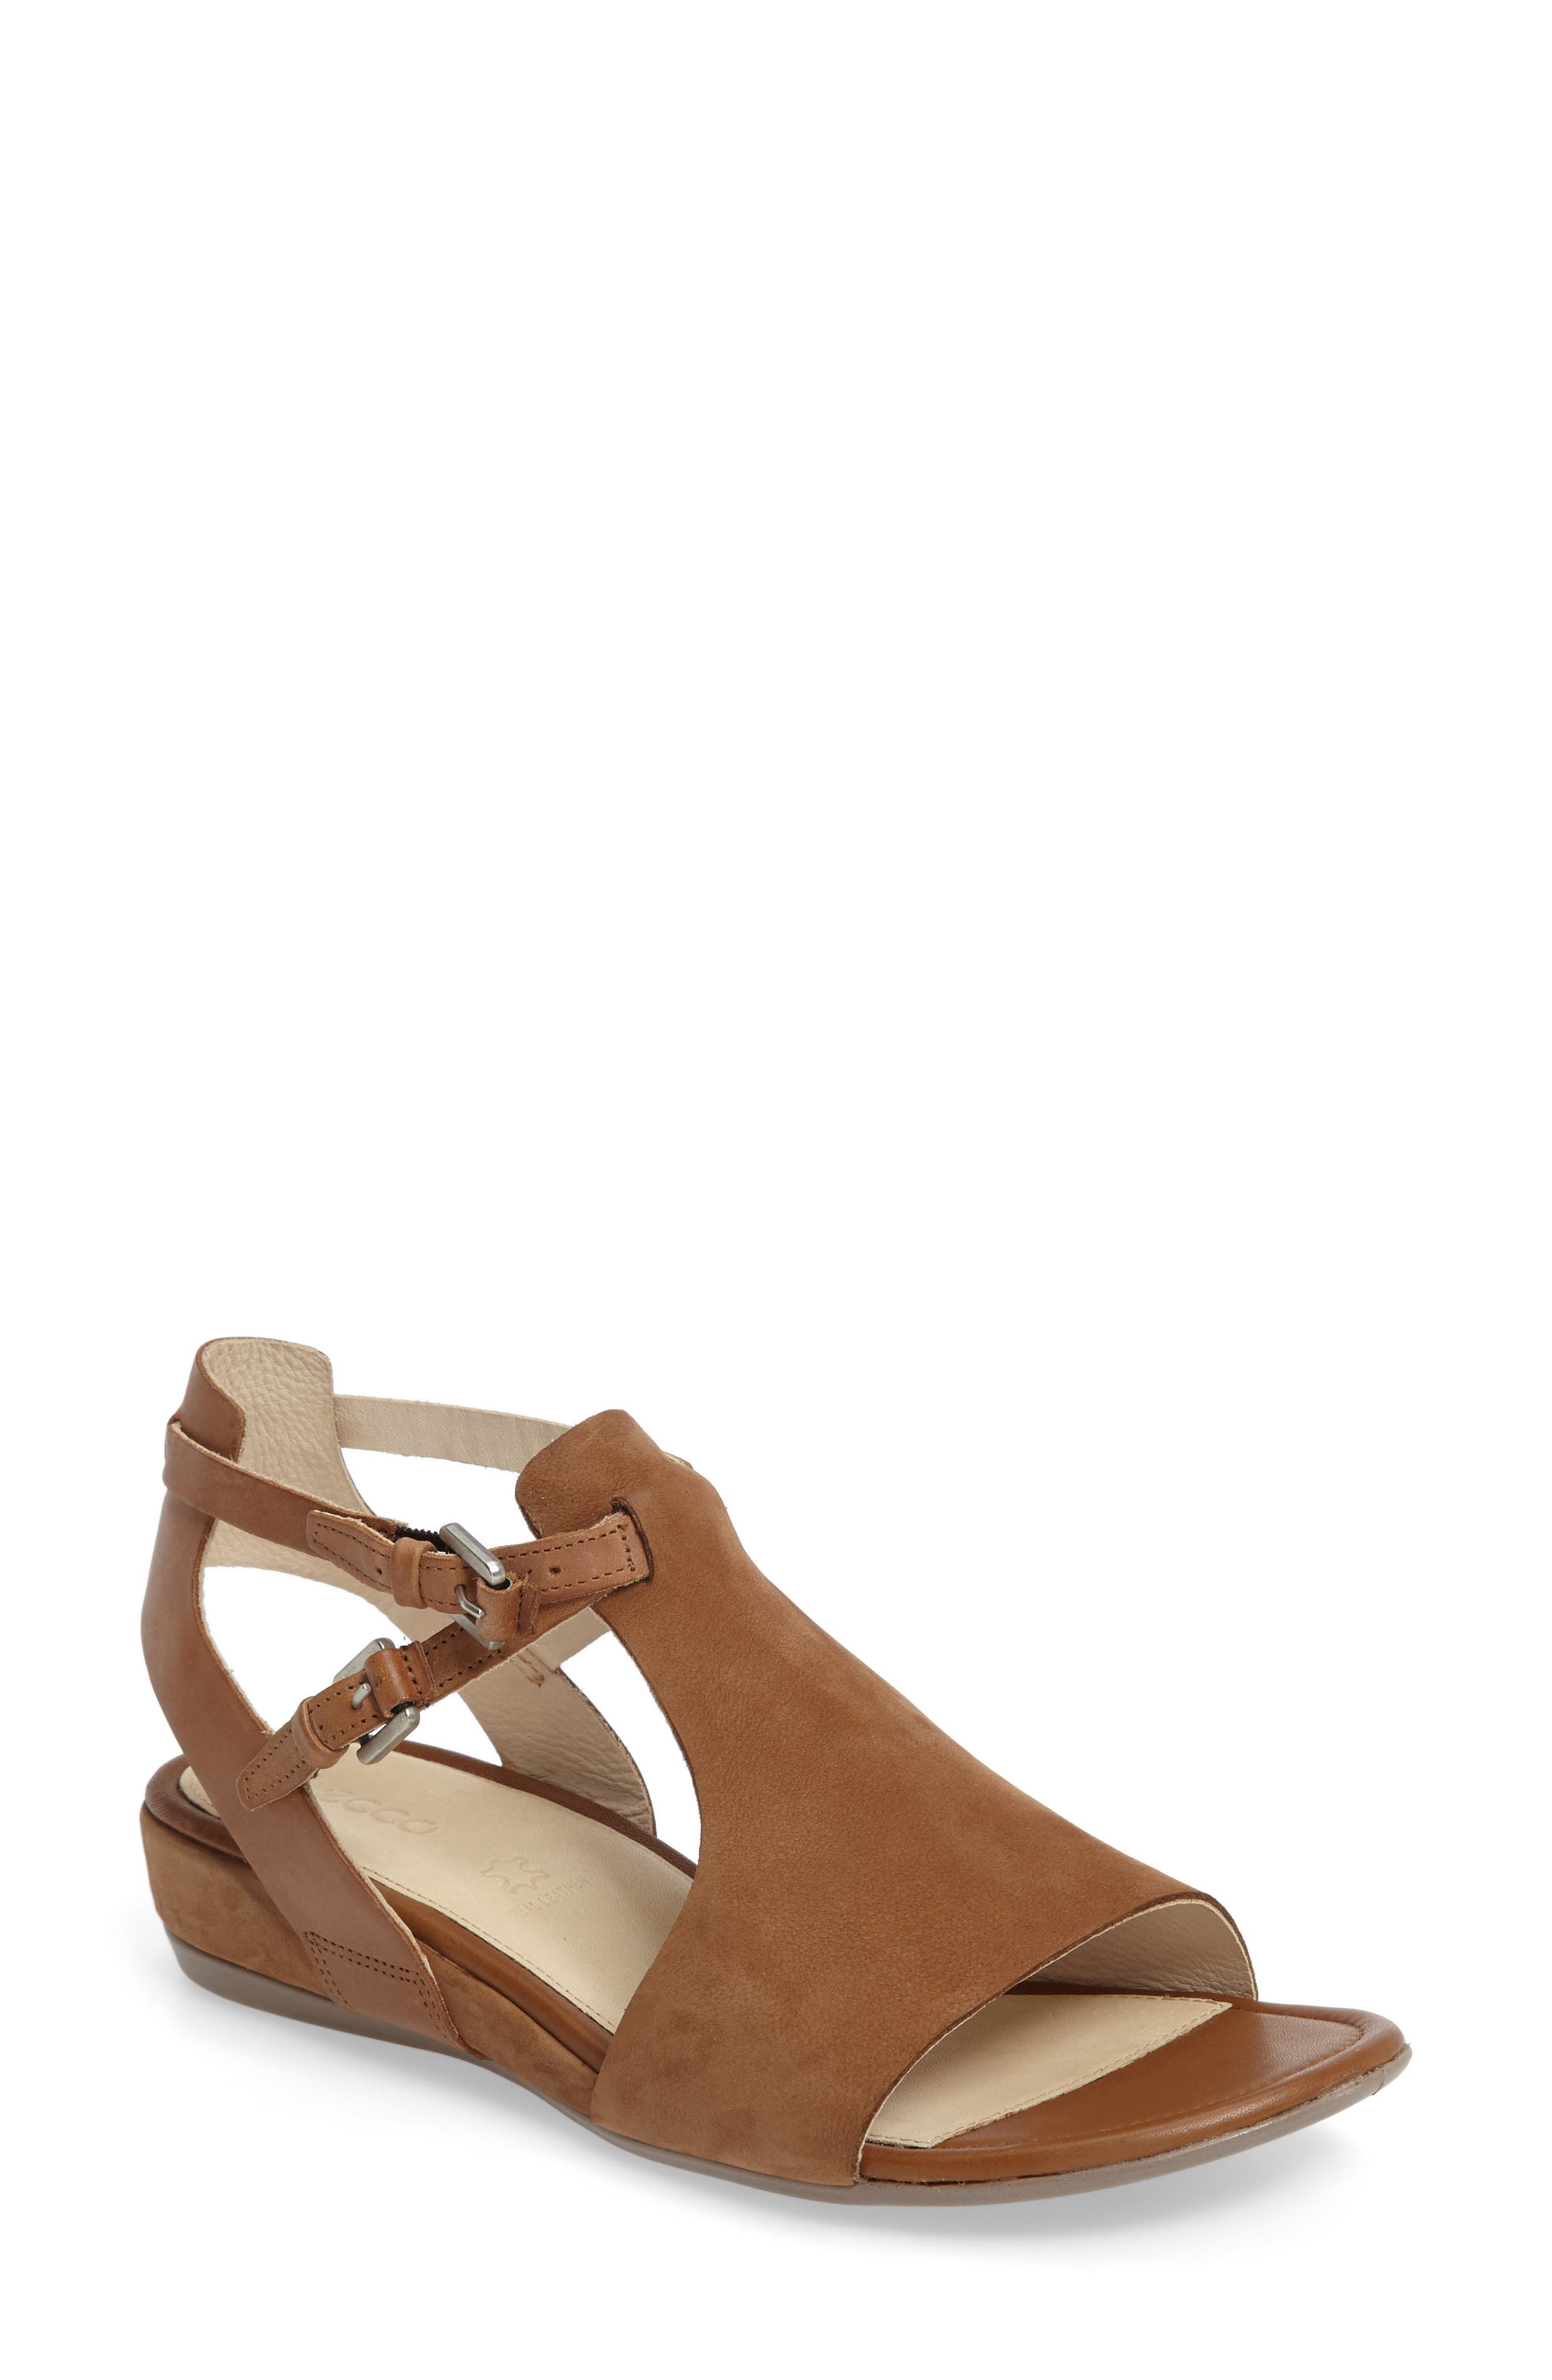 Alternate Image 1 Selected - ECCO 'Touch 25' Sandal (Women)